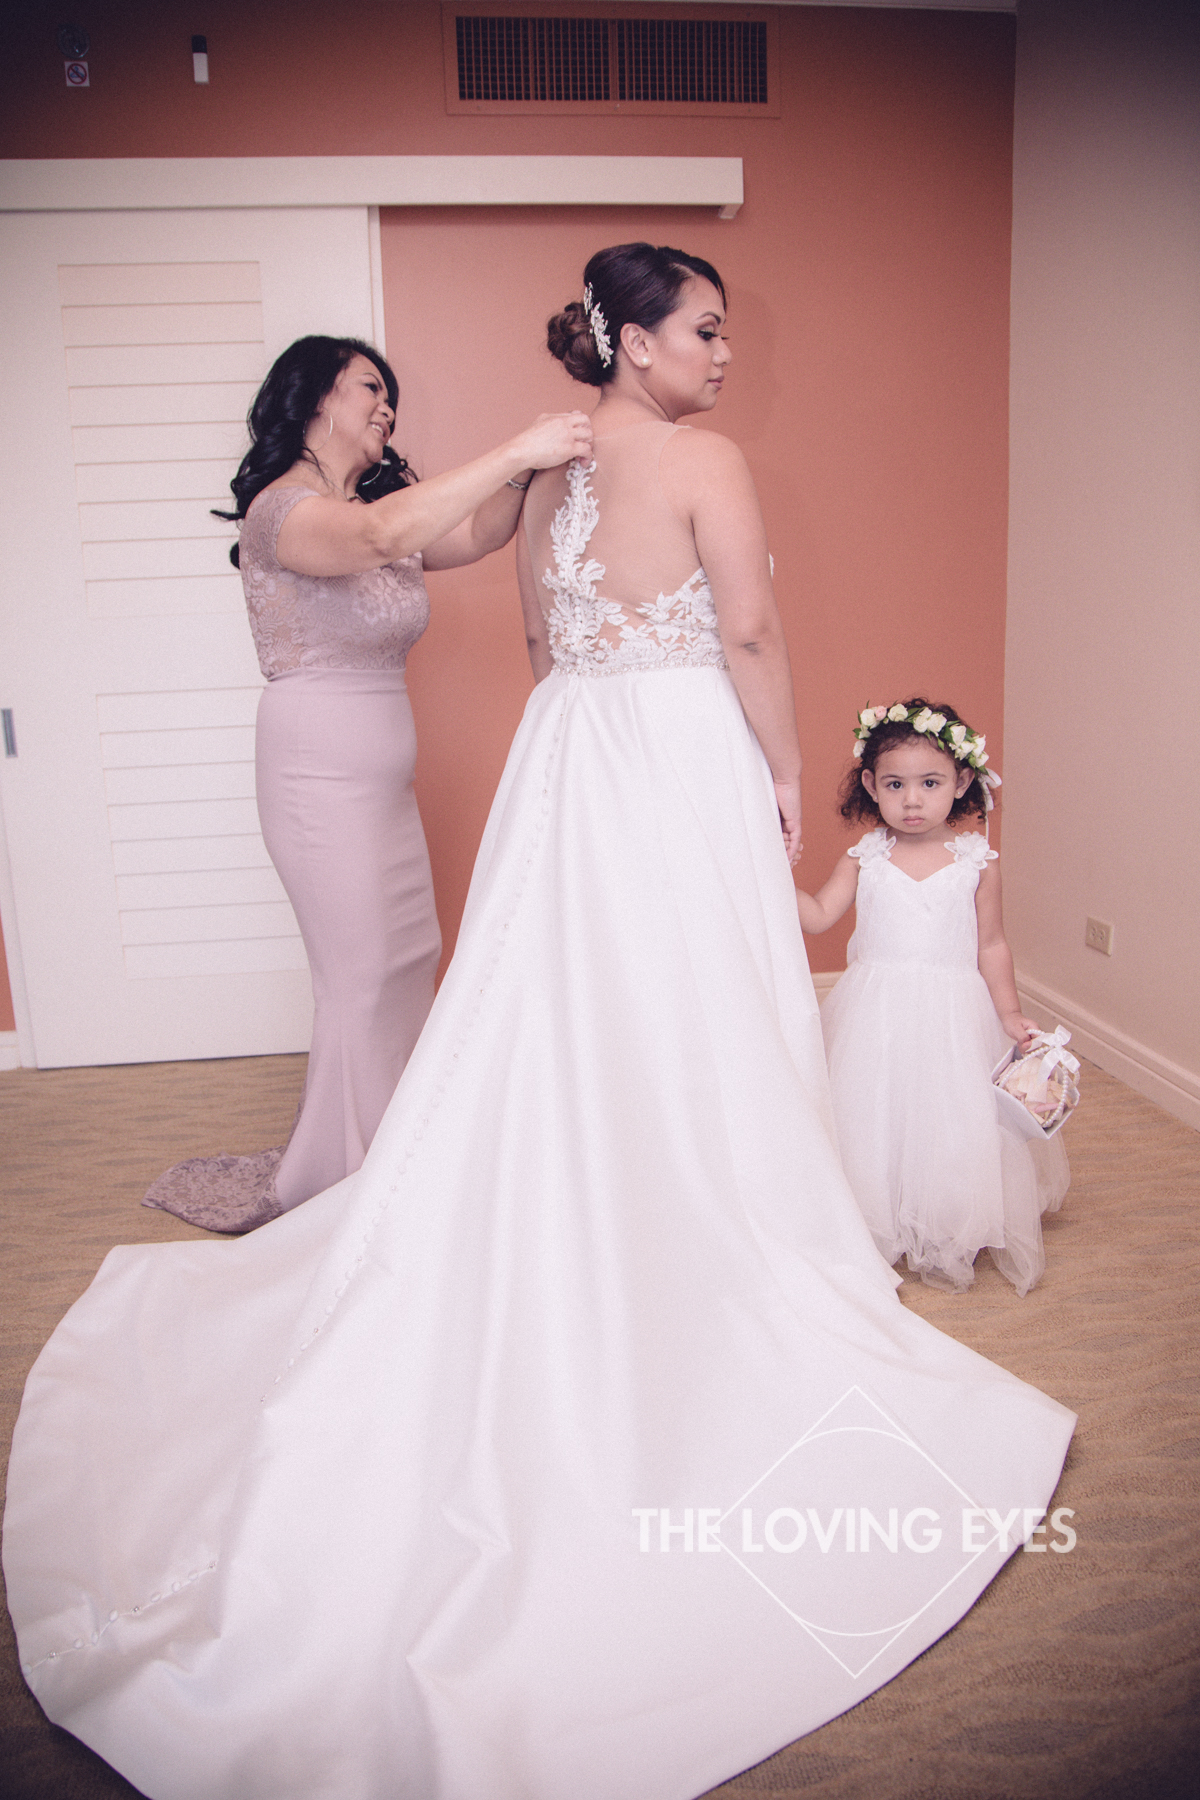 Bride with mother and flower girl on wedding day getting ready in wedding dress